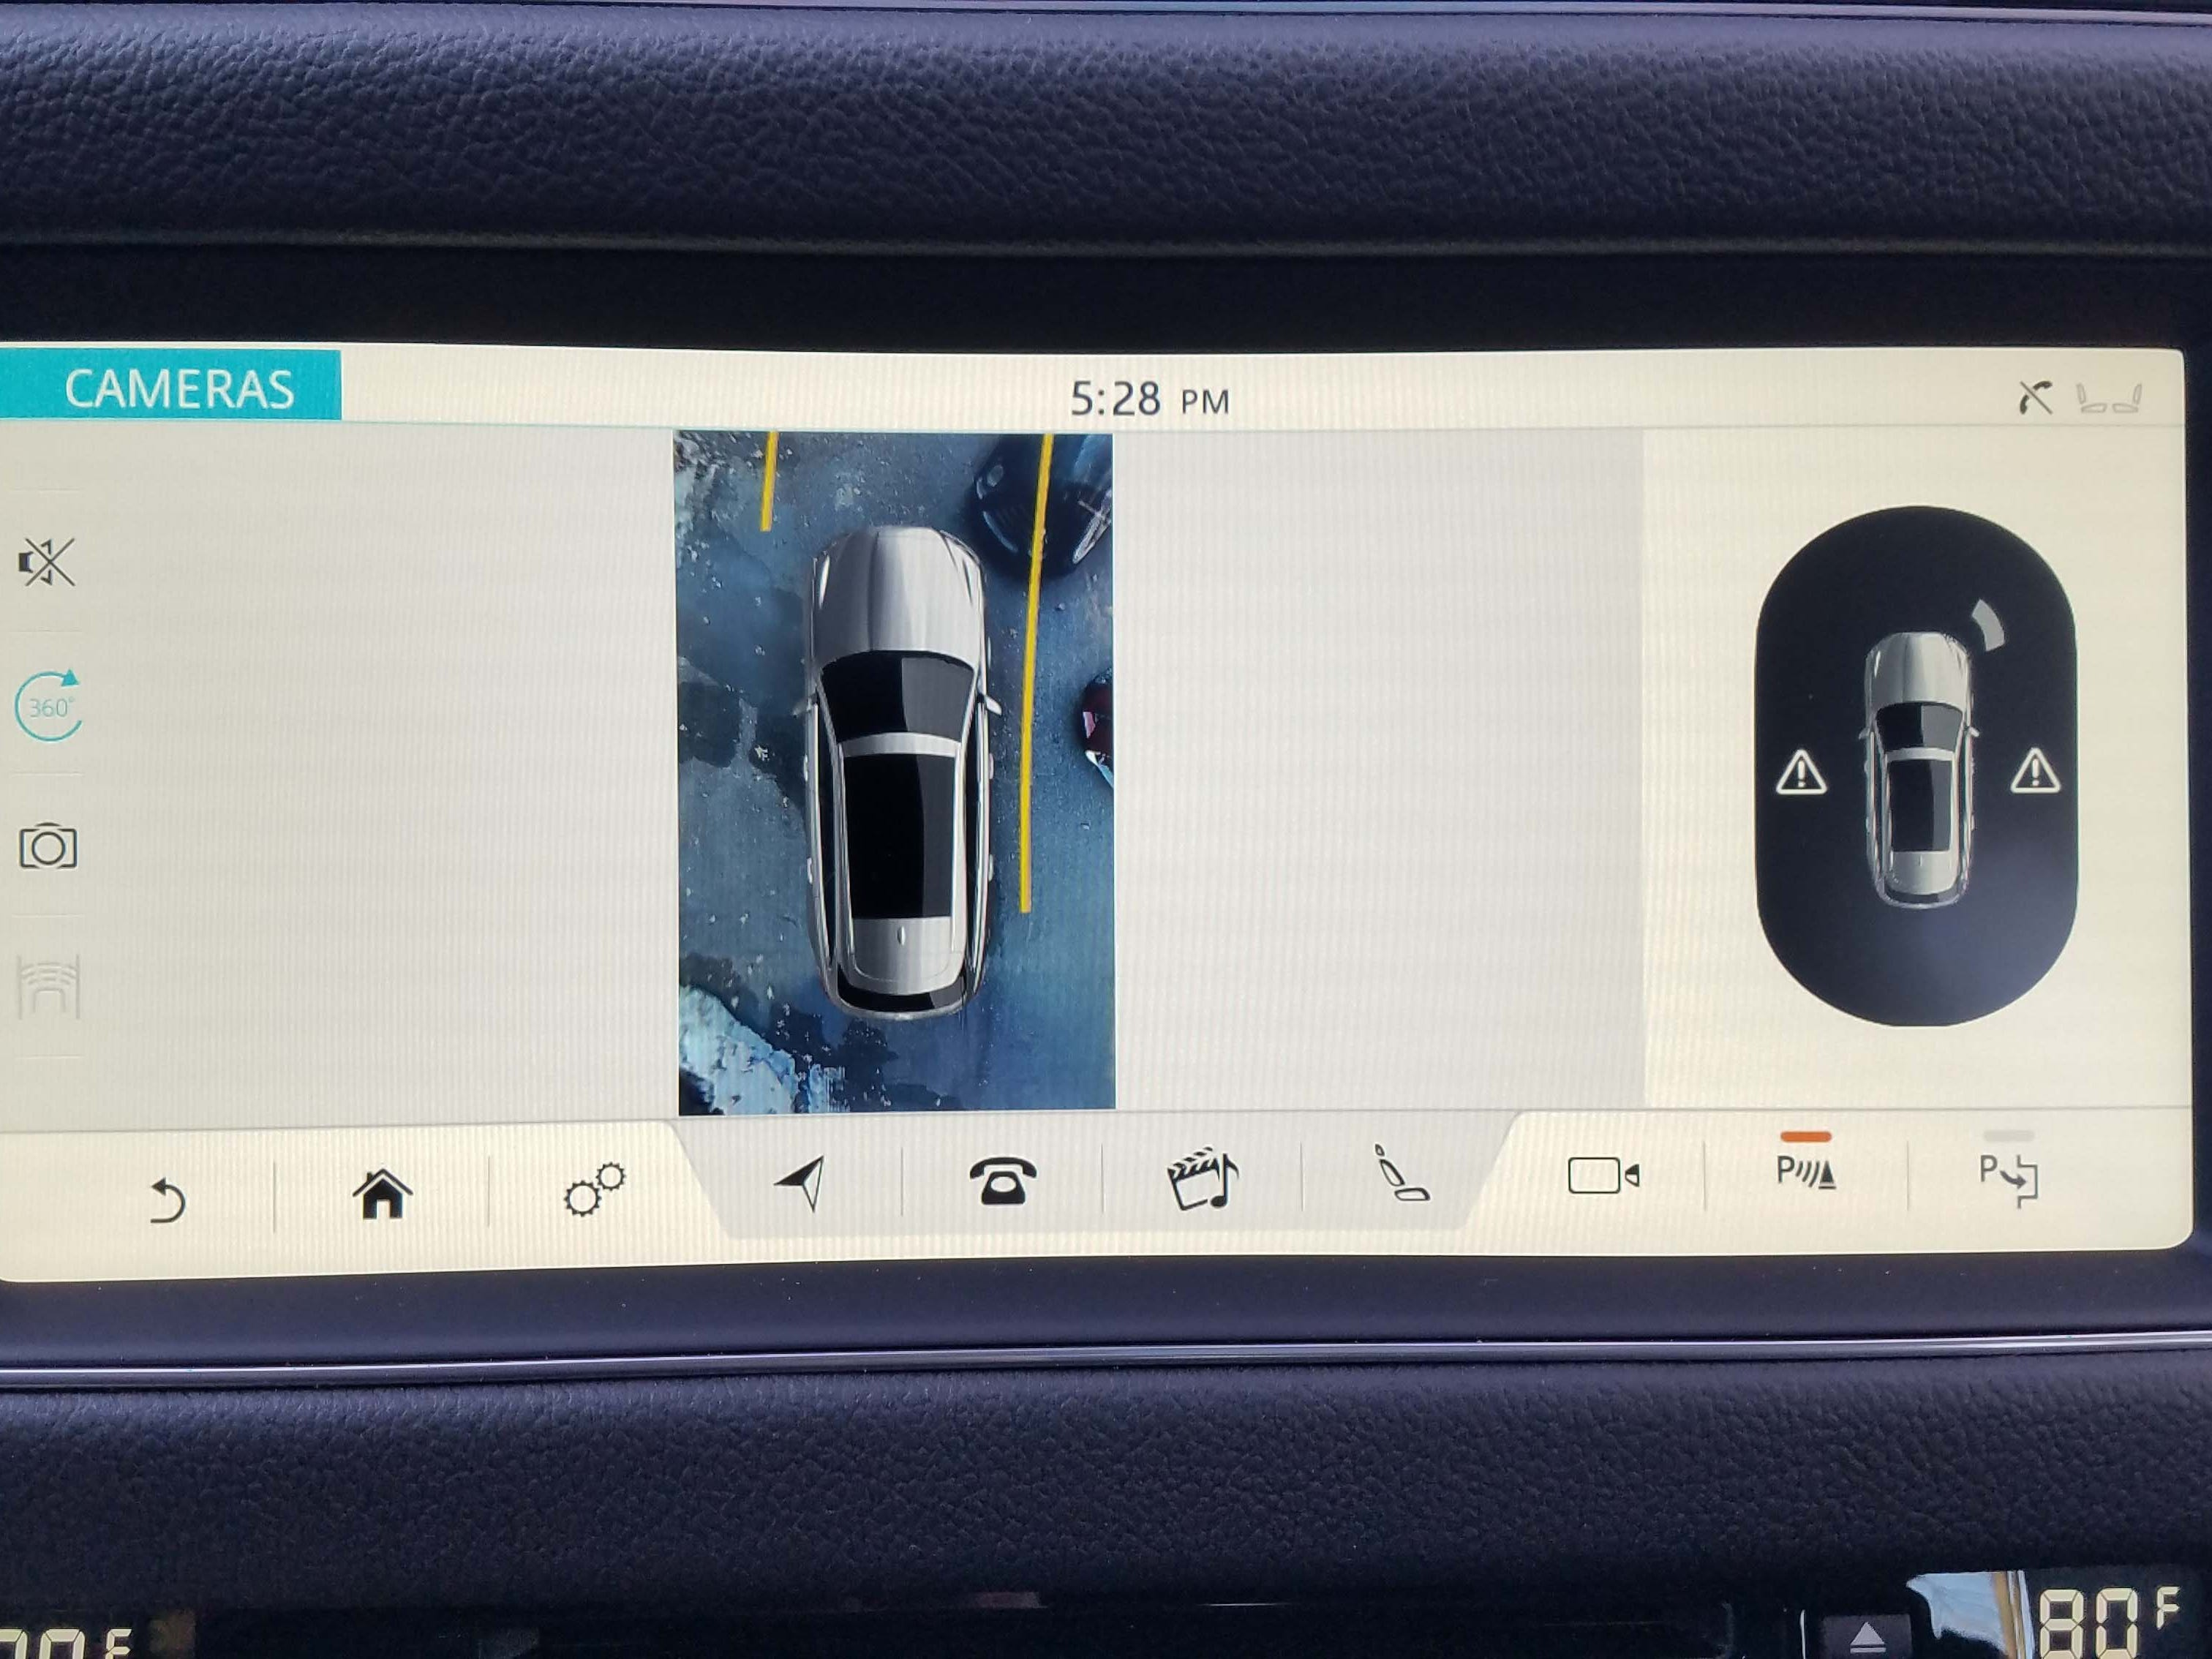 The Jaguar XF Sportbrake features an available 360-degree camera view to better negotiate tight spaces.